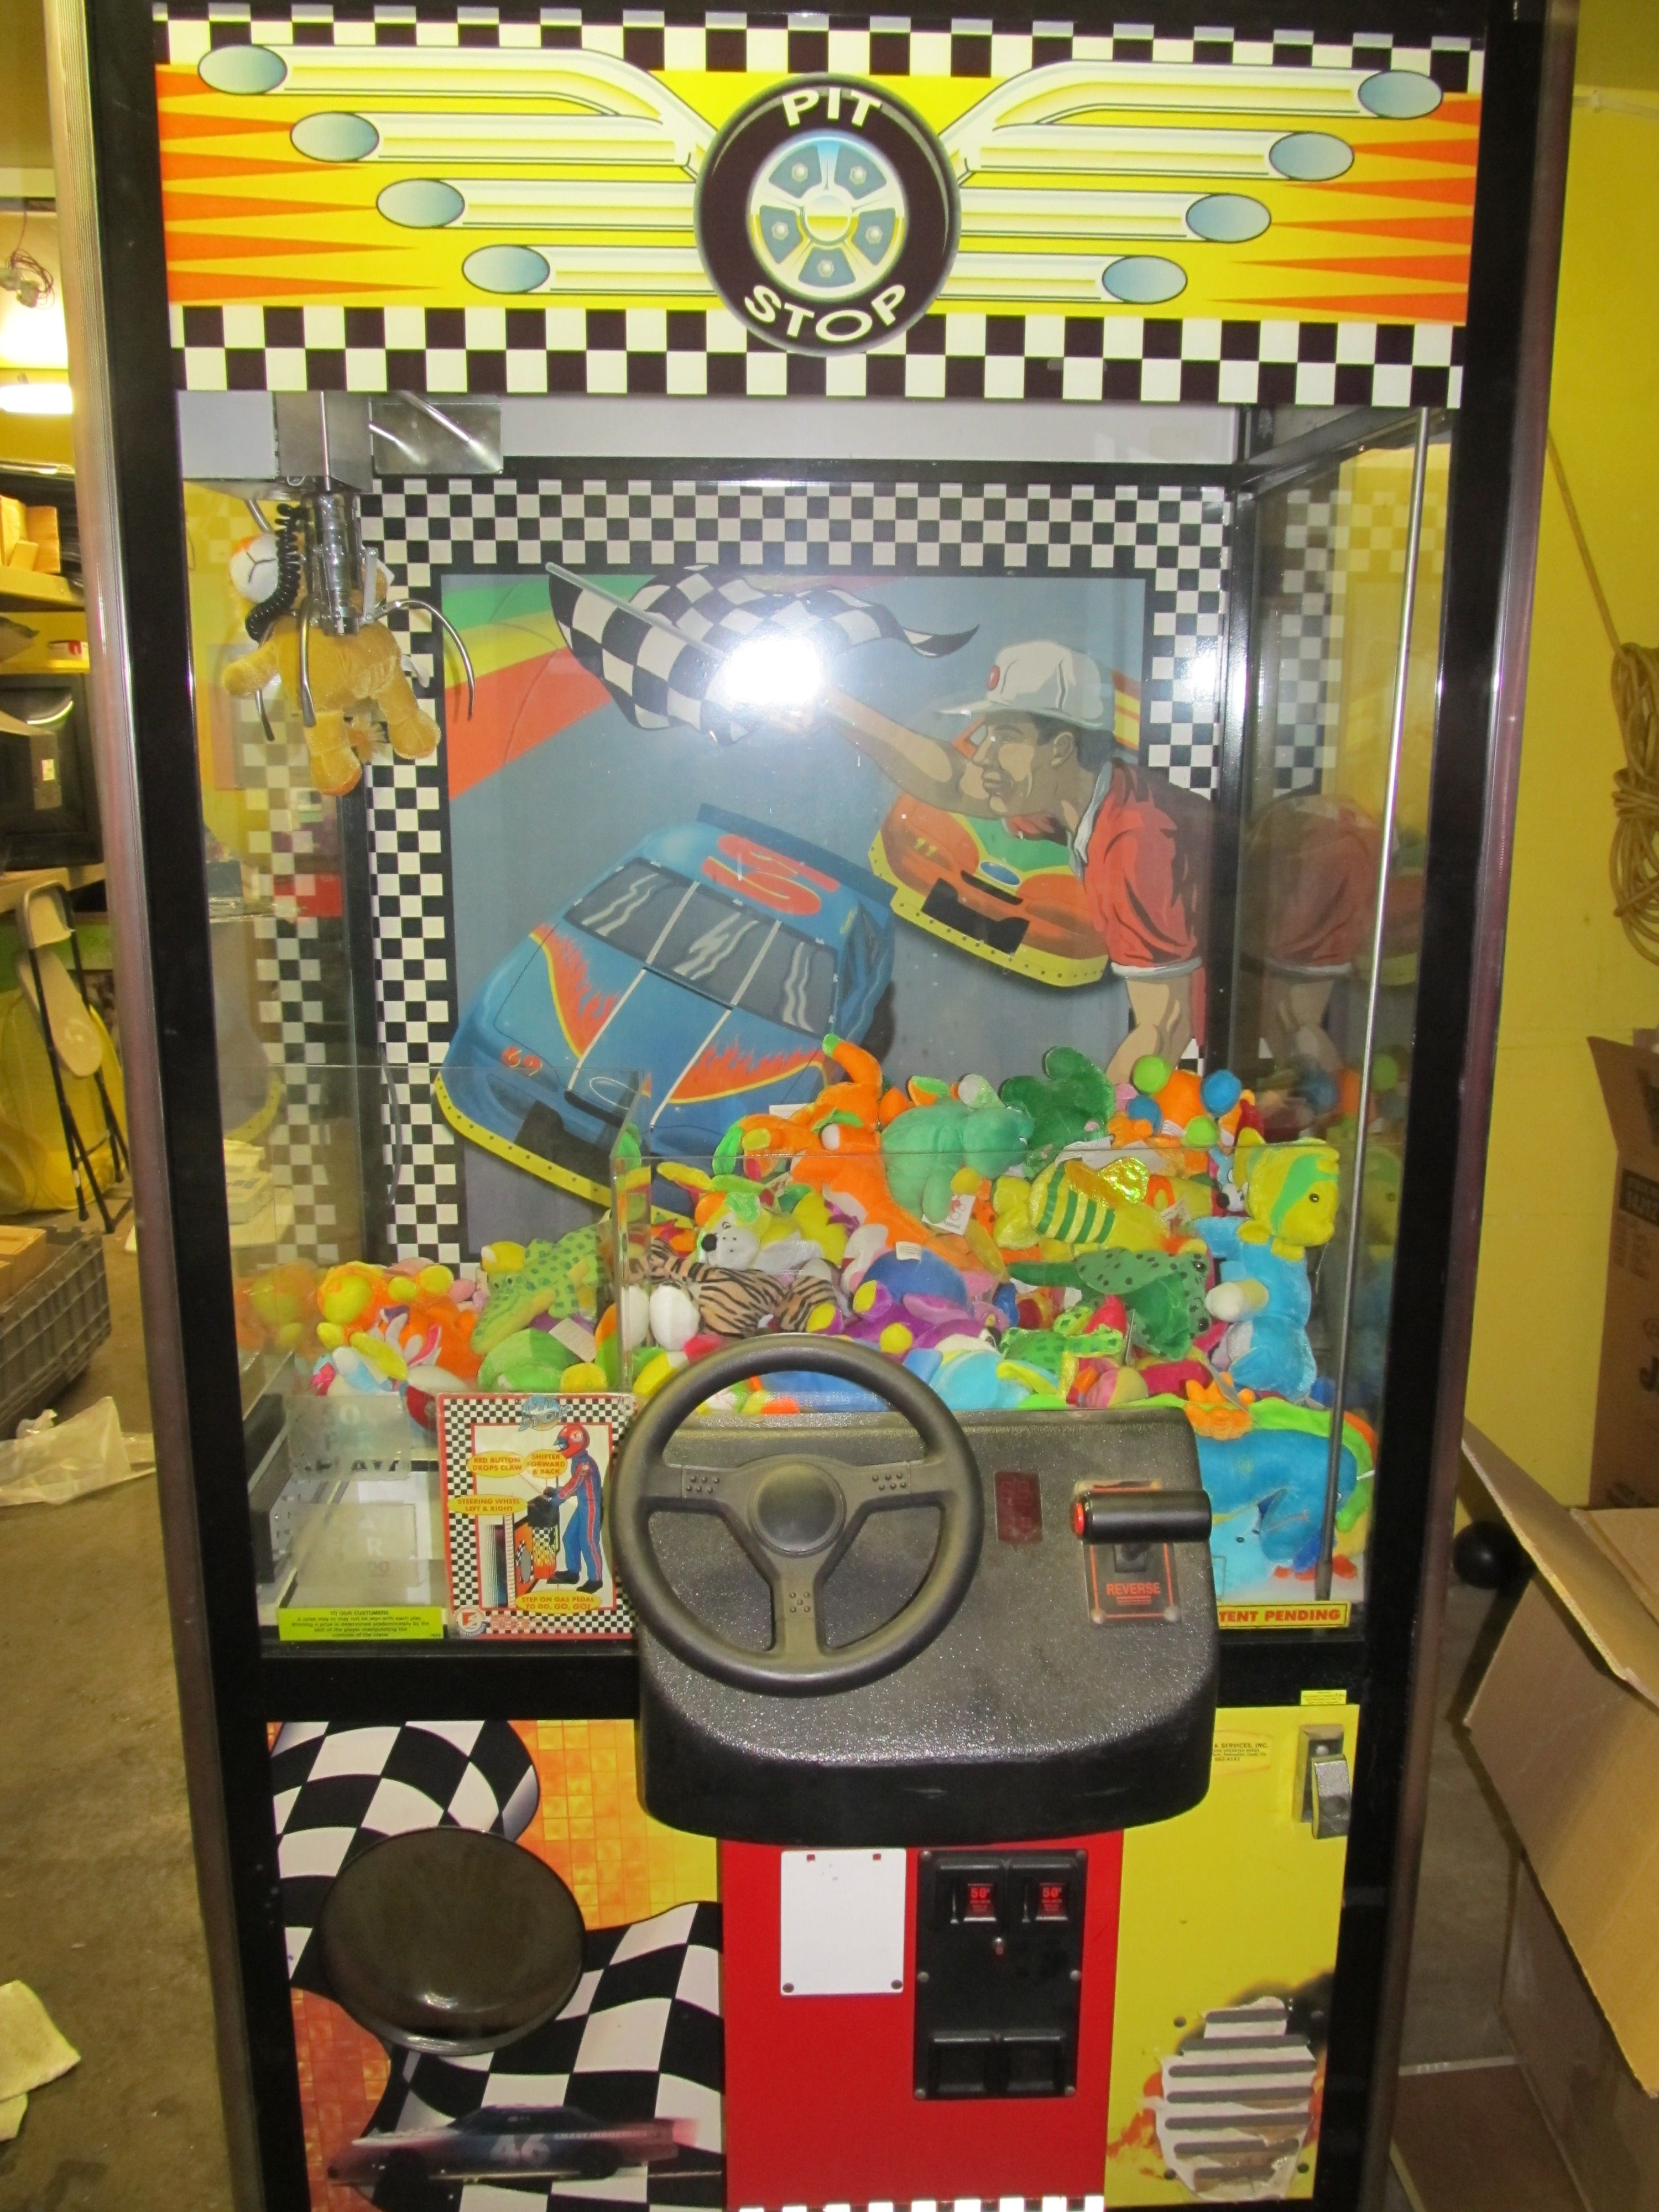 Crane machine game chicago party rentals carnival game